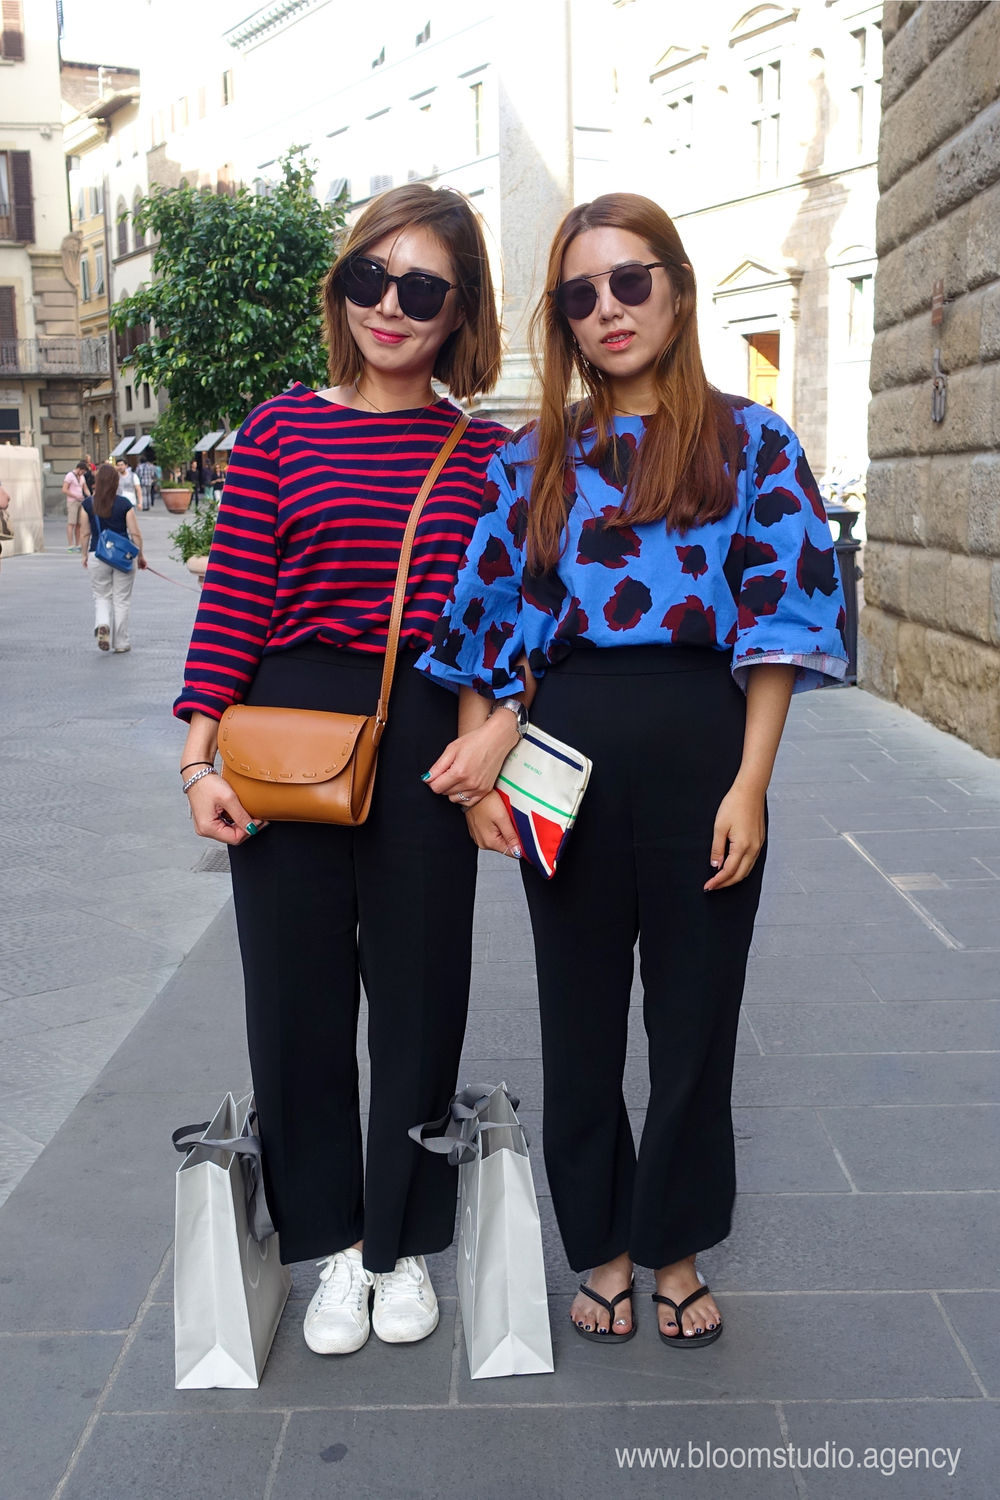 Korean girls like contrasting colors.